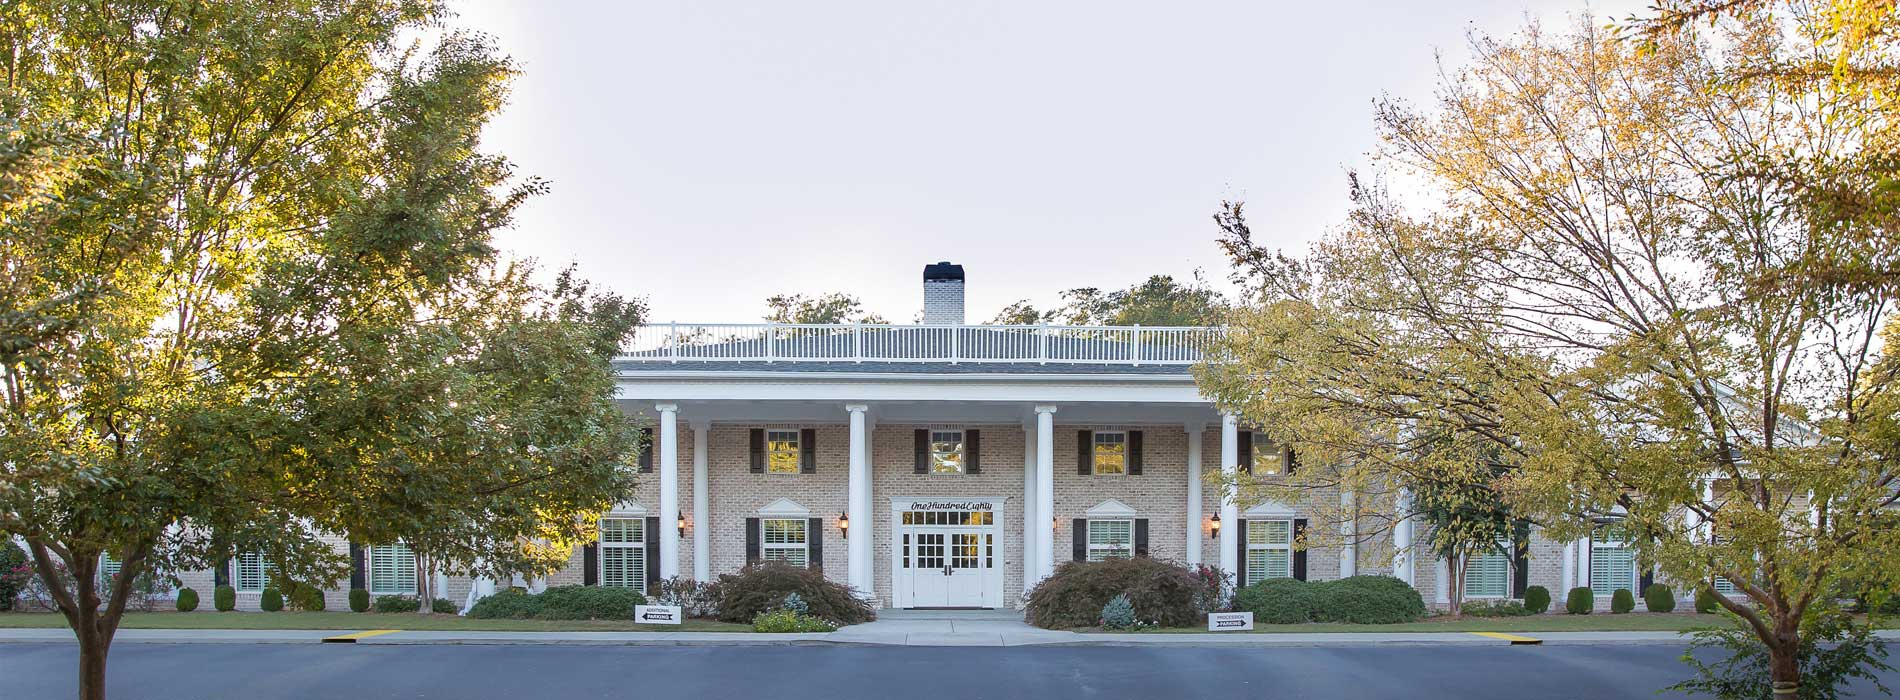 Mowell Funeral Home And Cremation Service Peachtree City